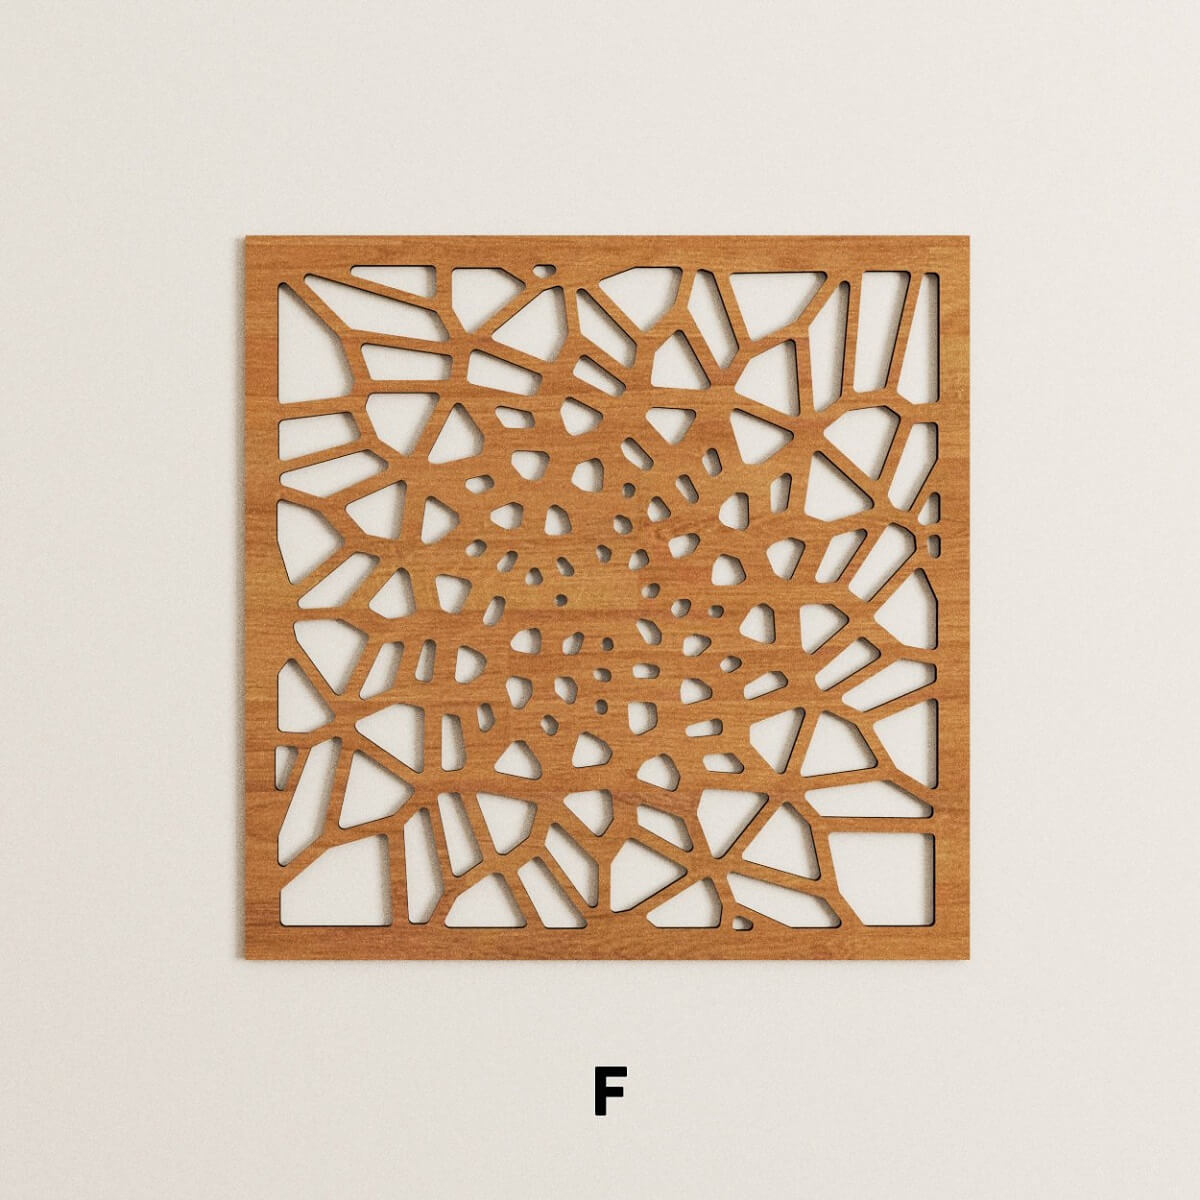 Parametric laser cut wooden panels